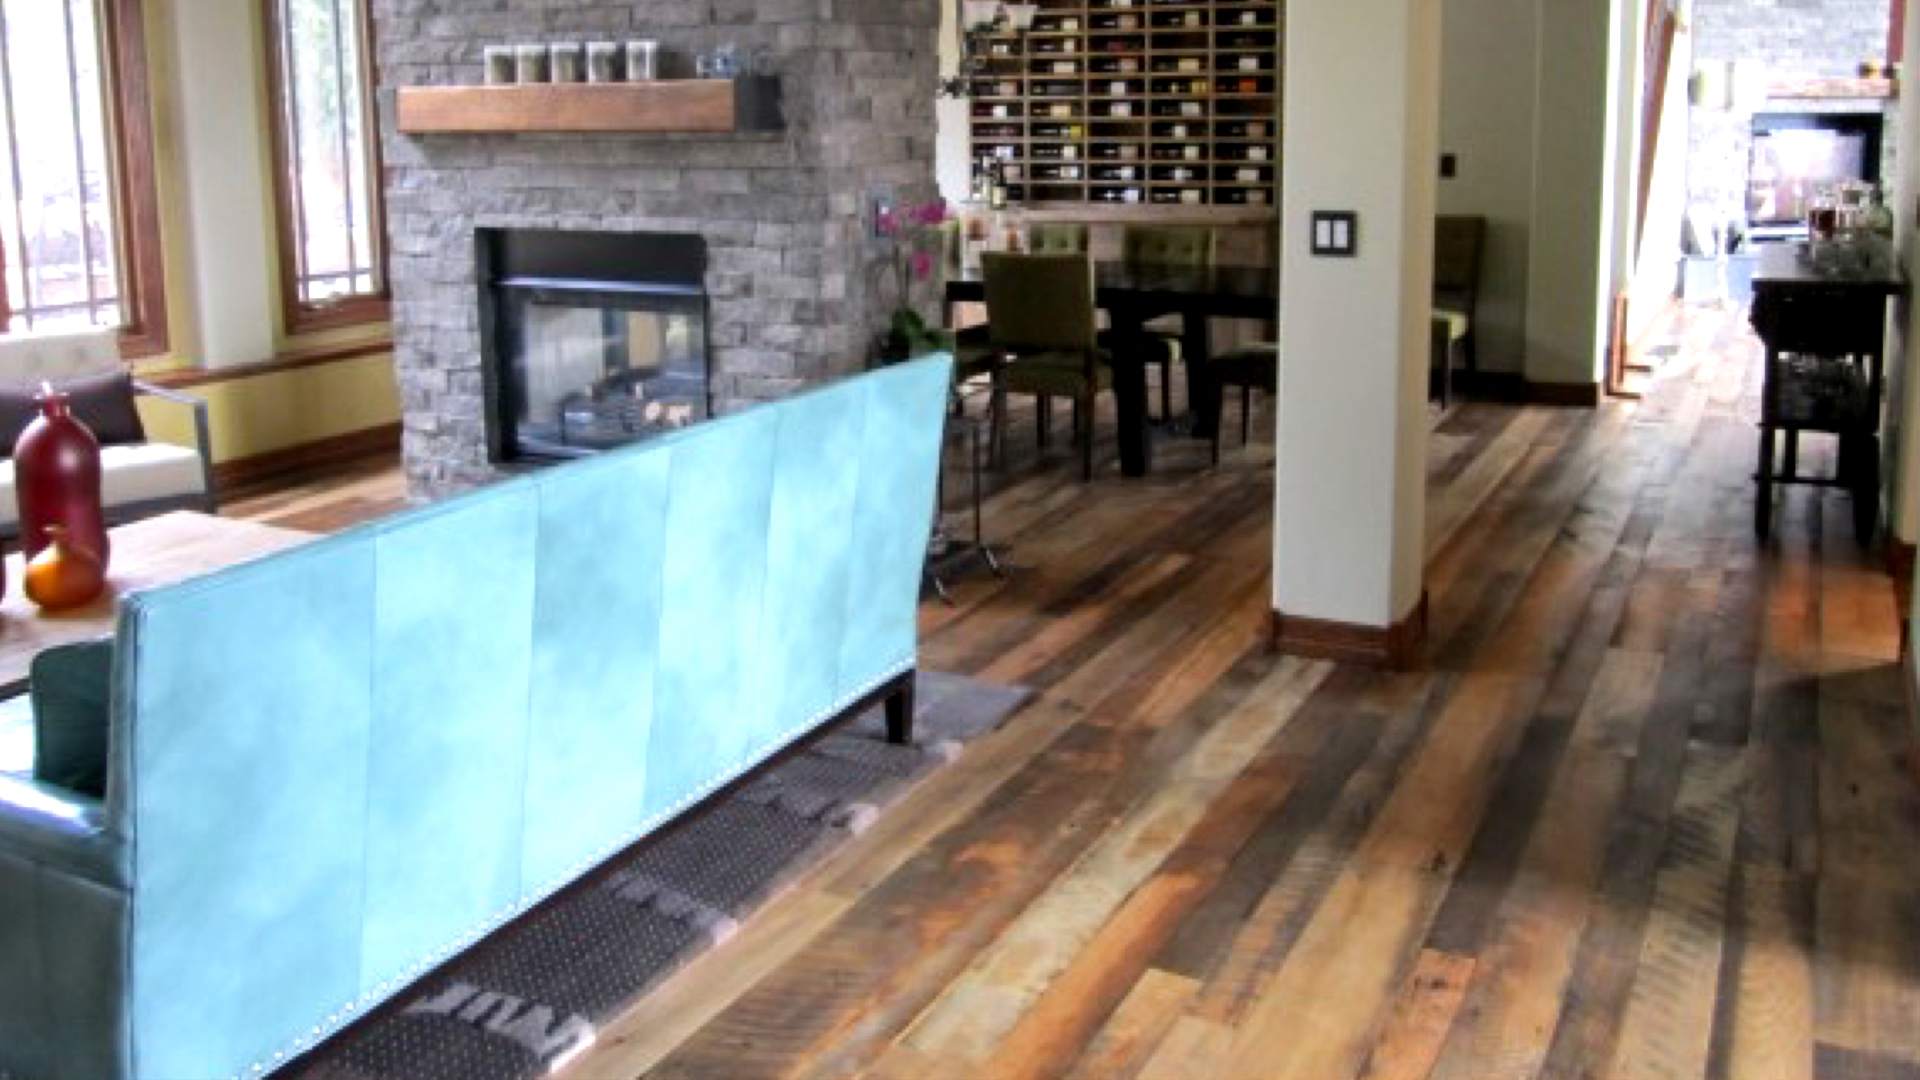 Hardwood Flooring with couch and fireplace